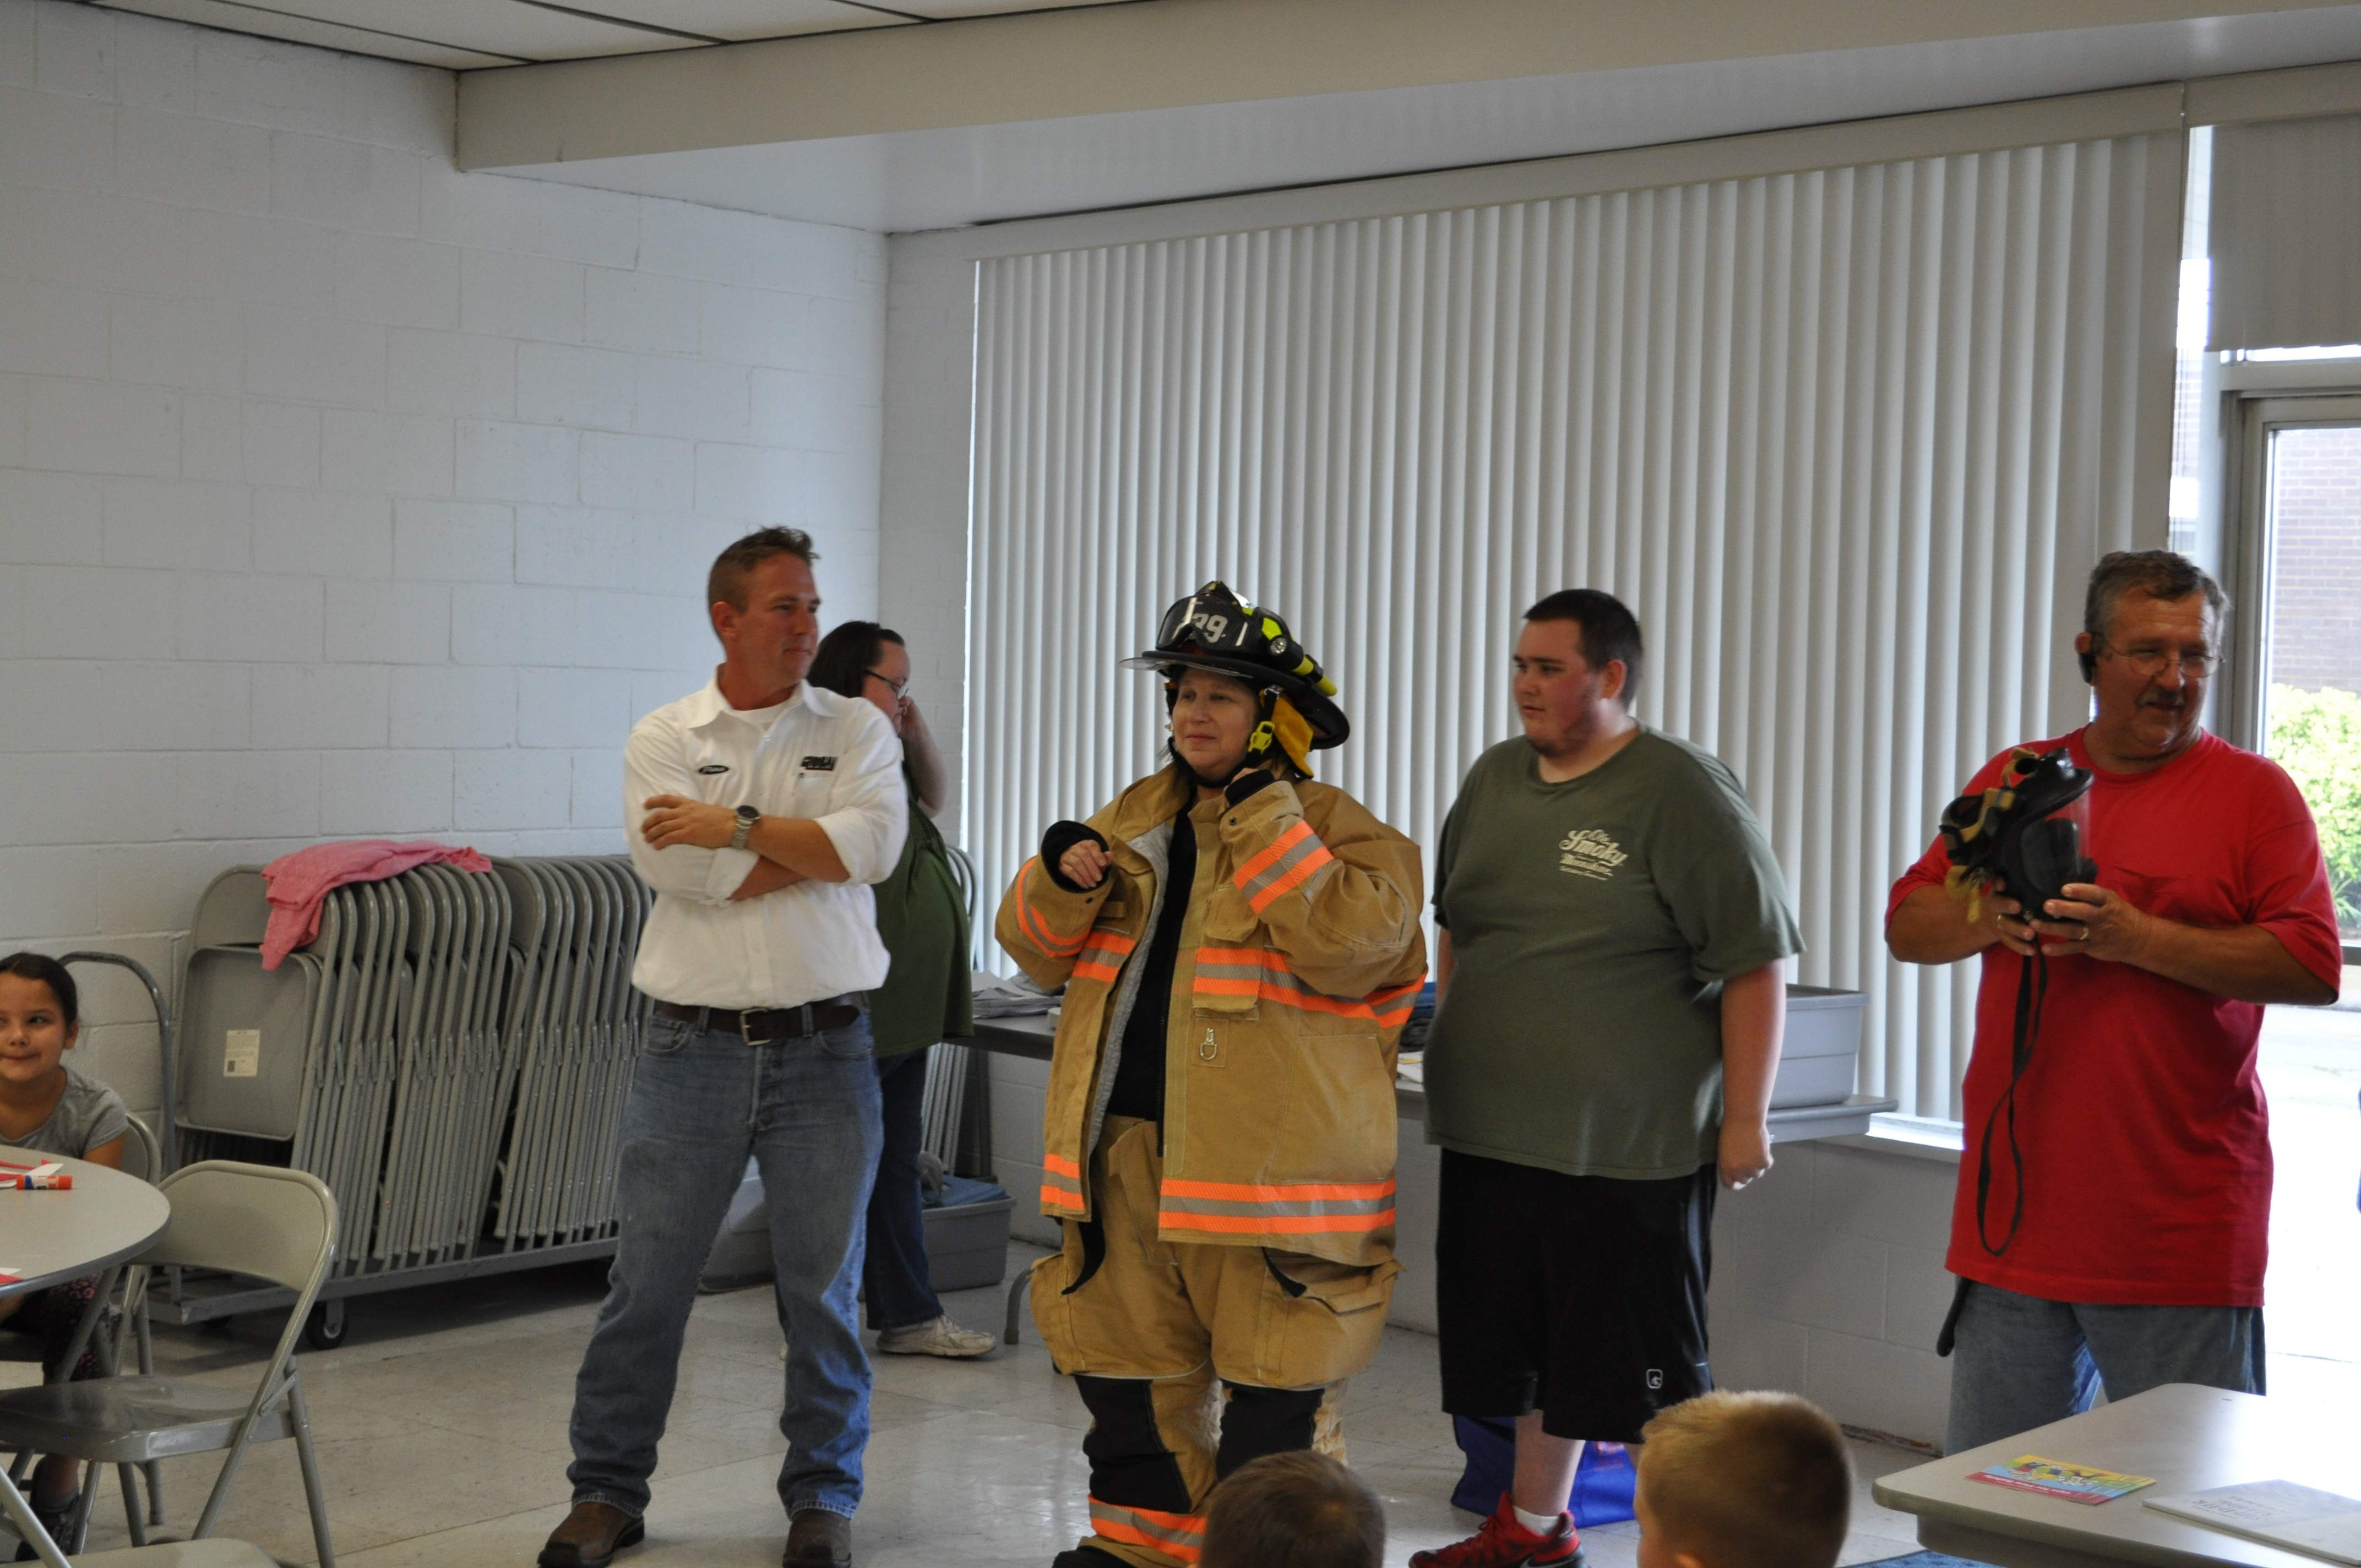 Christopher Library Director Janice Briley dons firefighter gear for the kids at the summer reading program's final session last Thursday. She was assisted by firefighters (left to right) Tim Learned and Josh Estes, as well as Christopher Fire Chief Ron Learned.